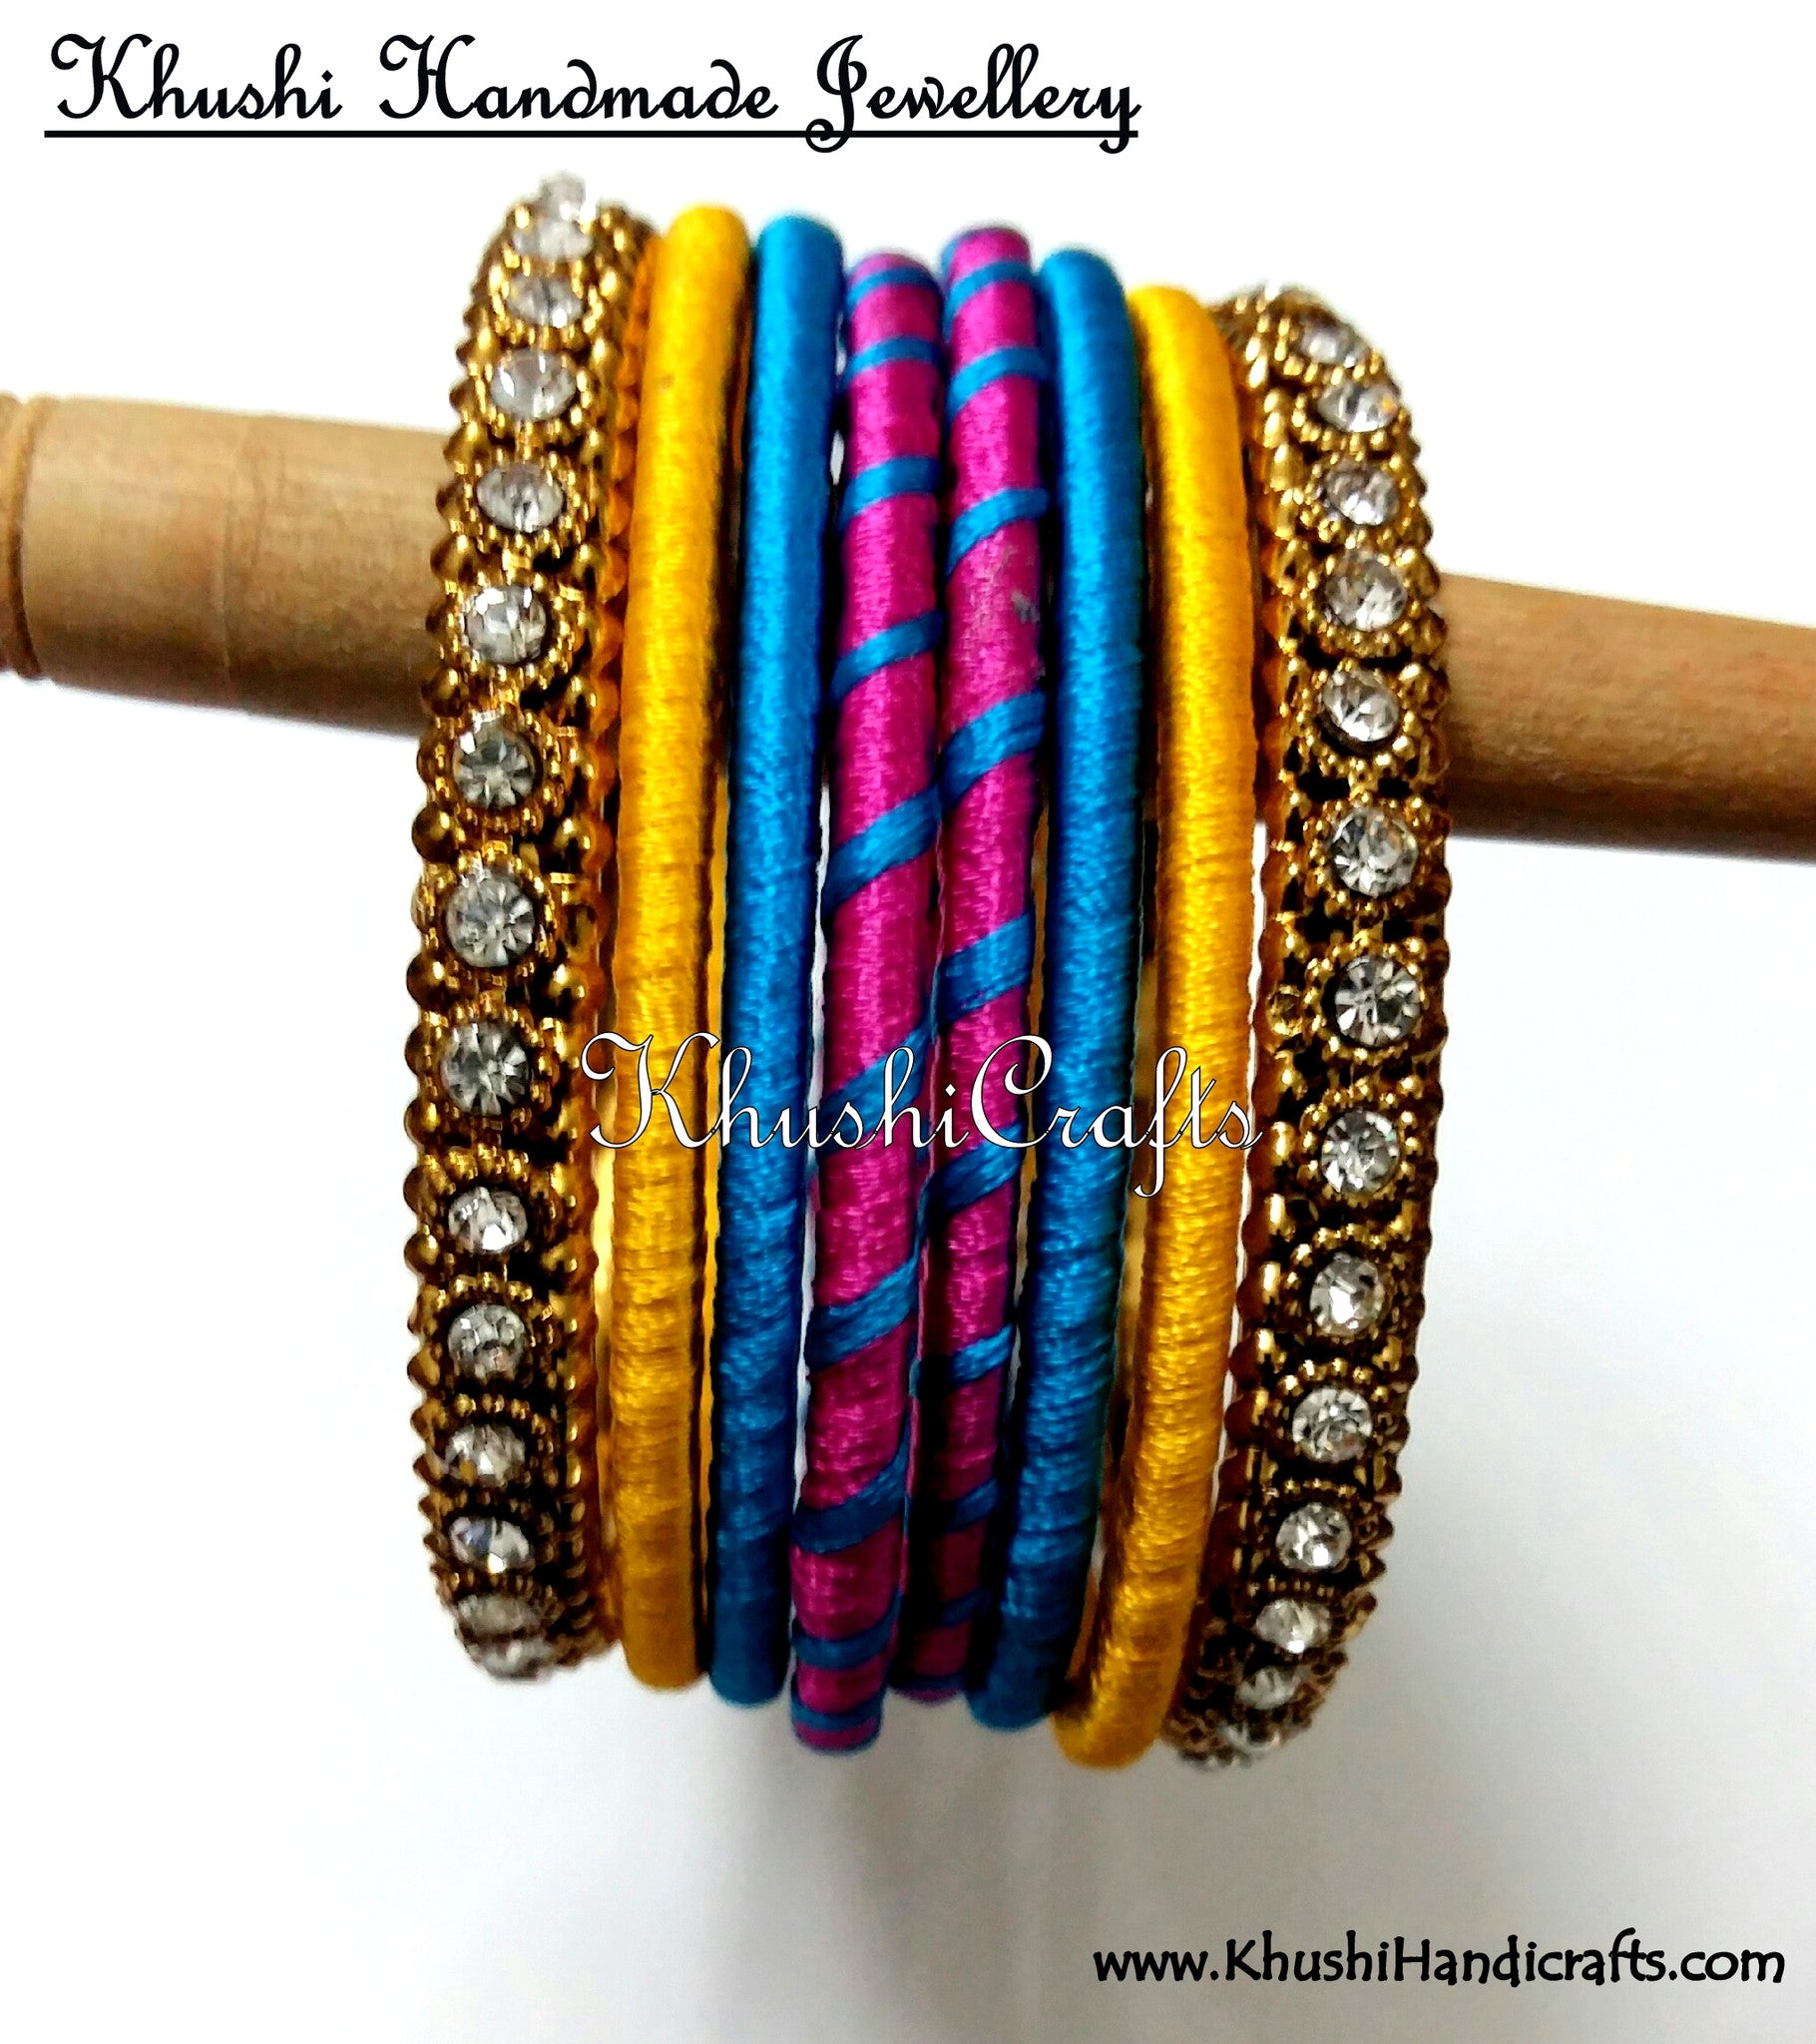 Hand-crafted exquisite Silk Bangles in Pink Blue and Yellow - Khushi Handmade Jewellery